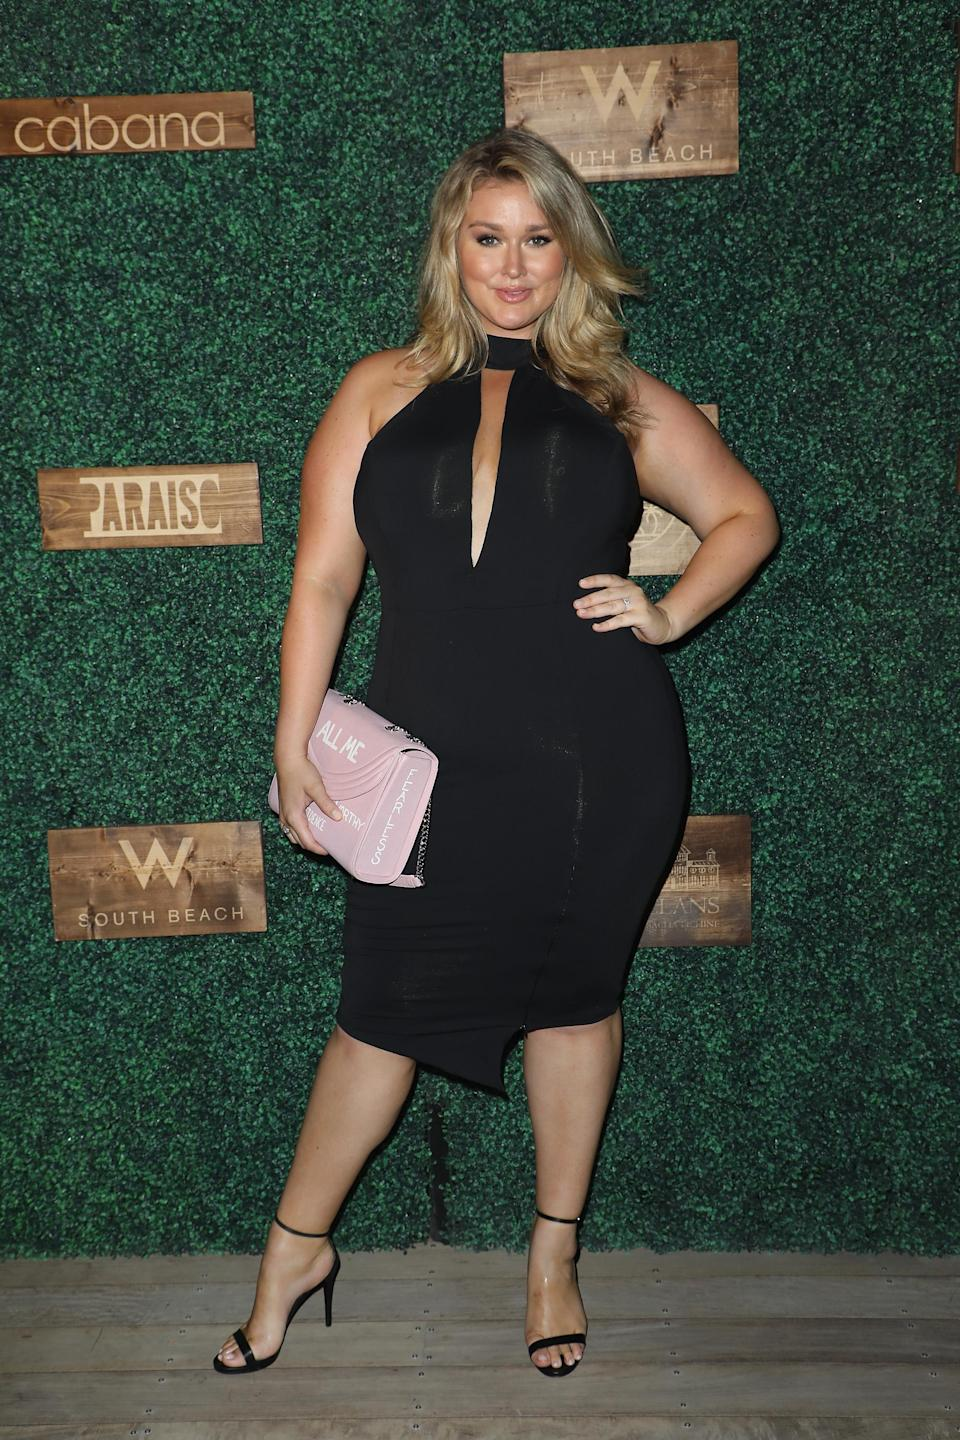 Hunter McGrady attends the 2018 Sports Illustrated Swimsuit show at PARAISO during Miami Swim Week at The W Hotel South Beach on July 15, 2018 in Miami, Florida. (Photo: Alexander Tamargo/Getty Images for Sports Illustrated)